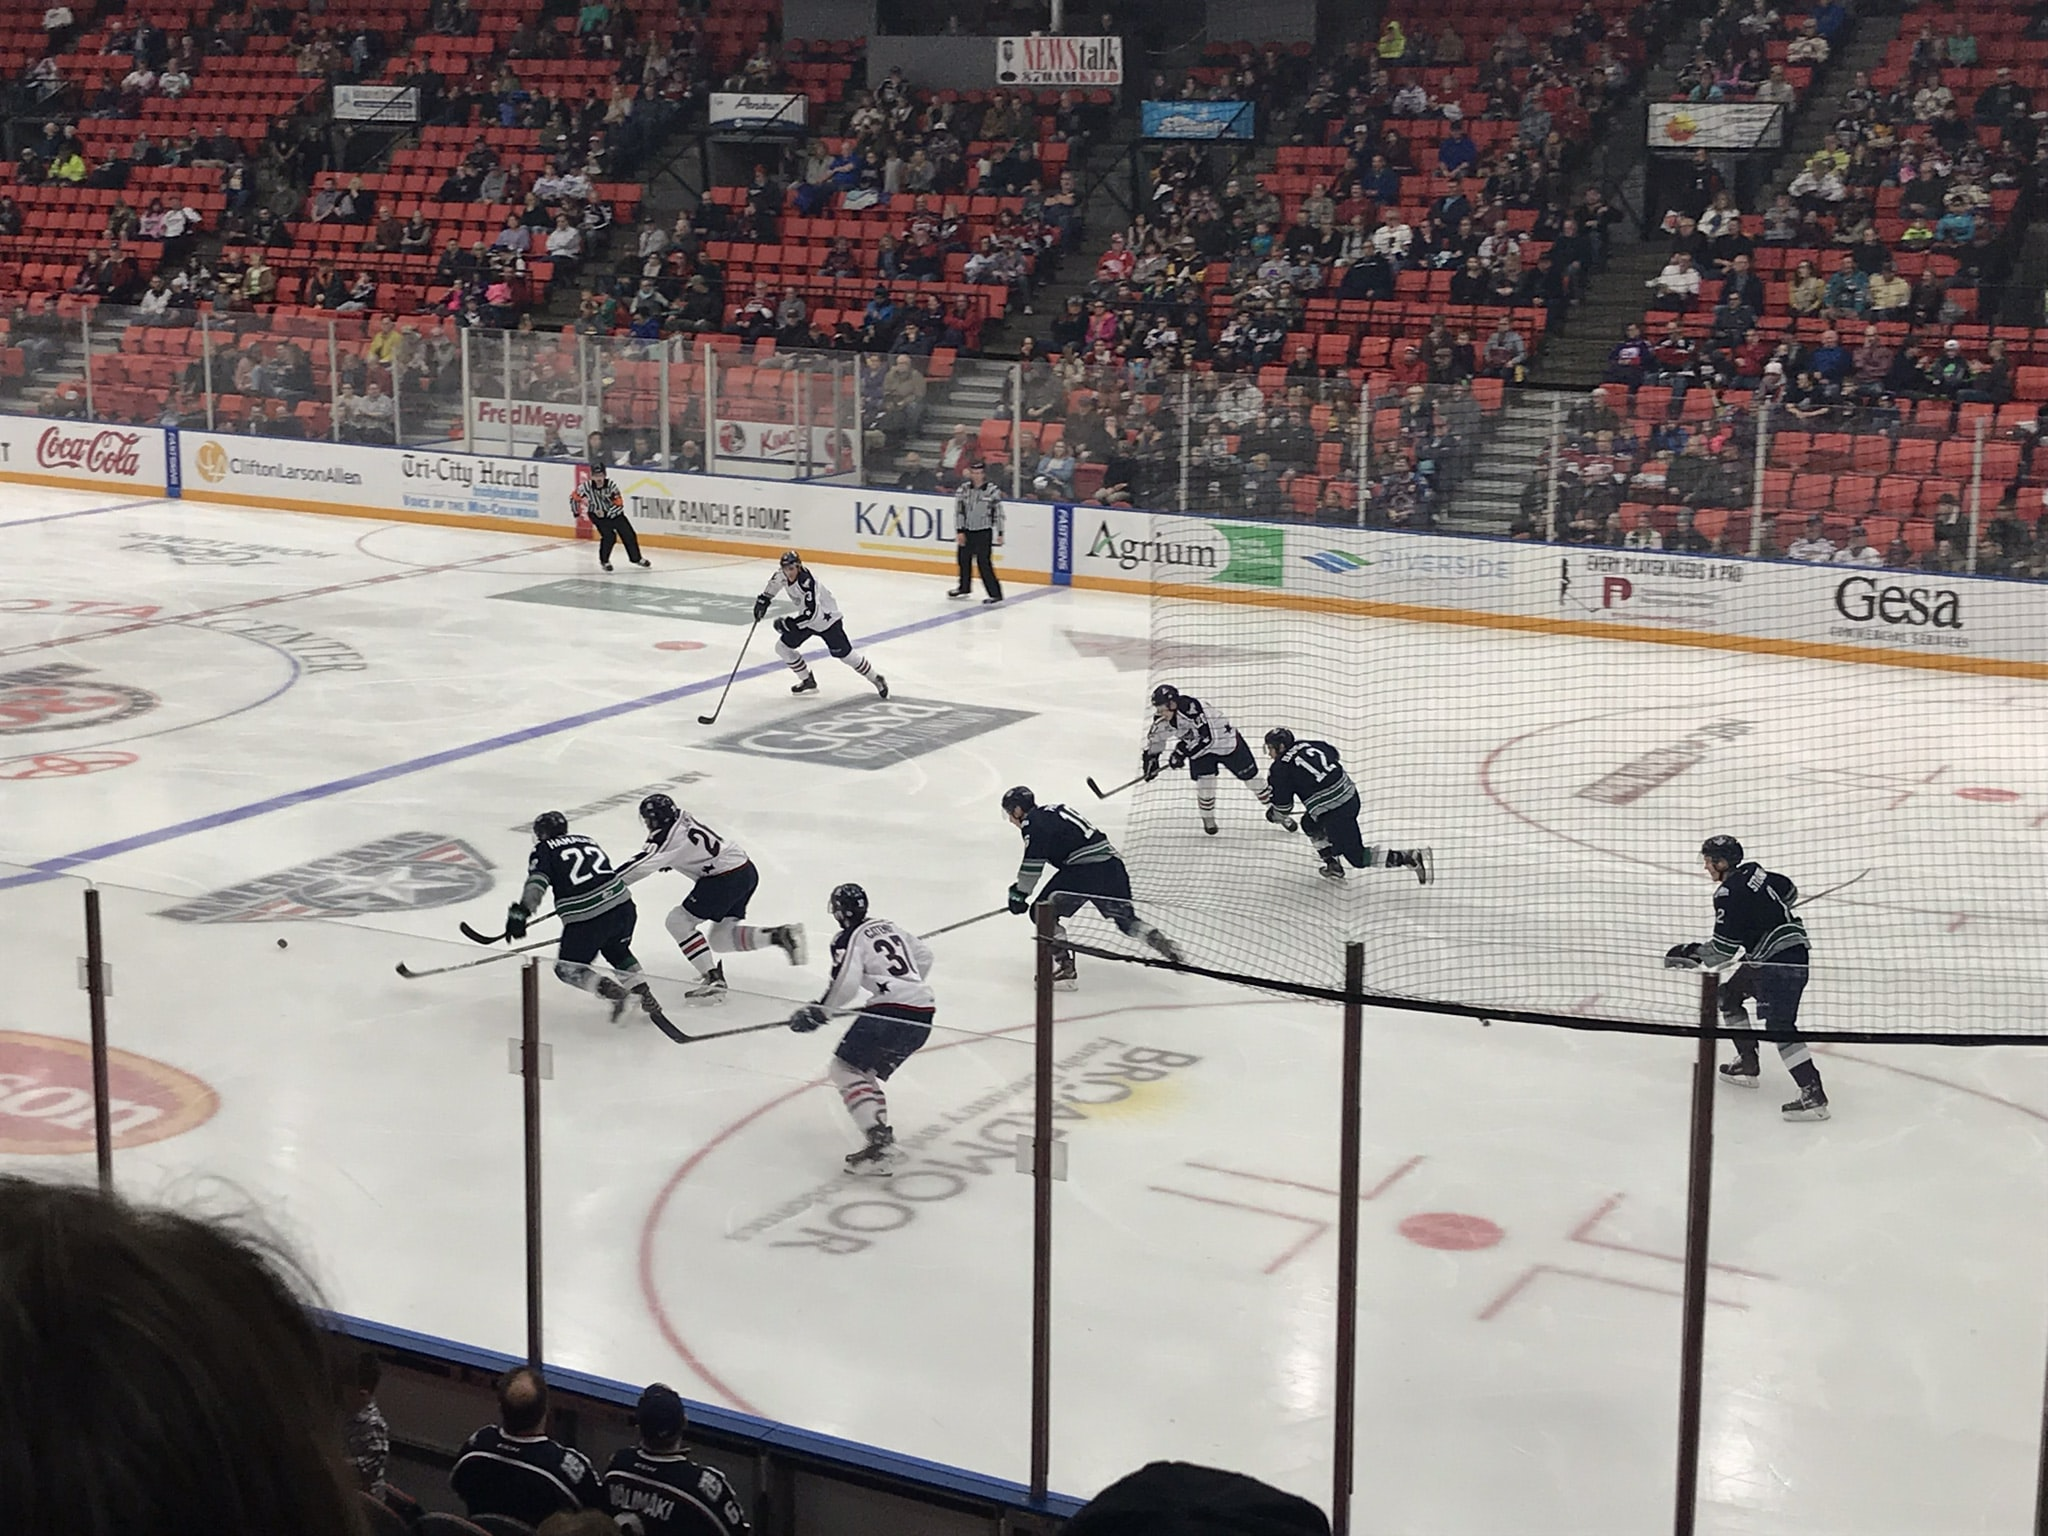 people playing ice hockey at the arena